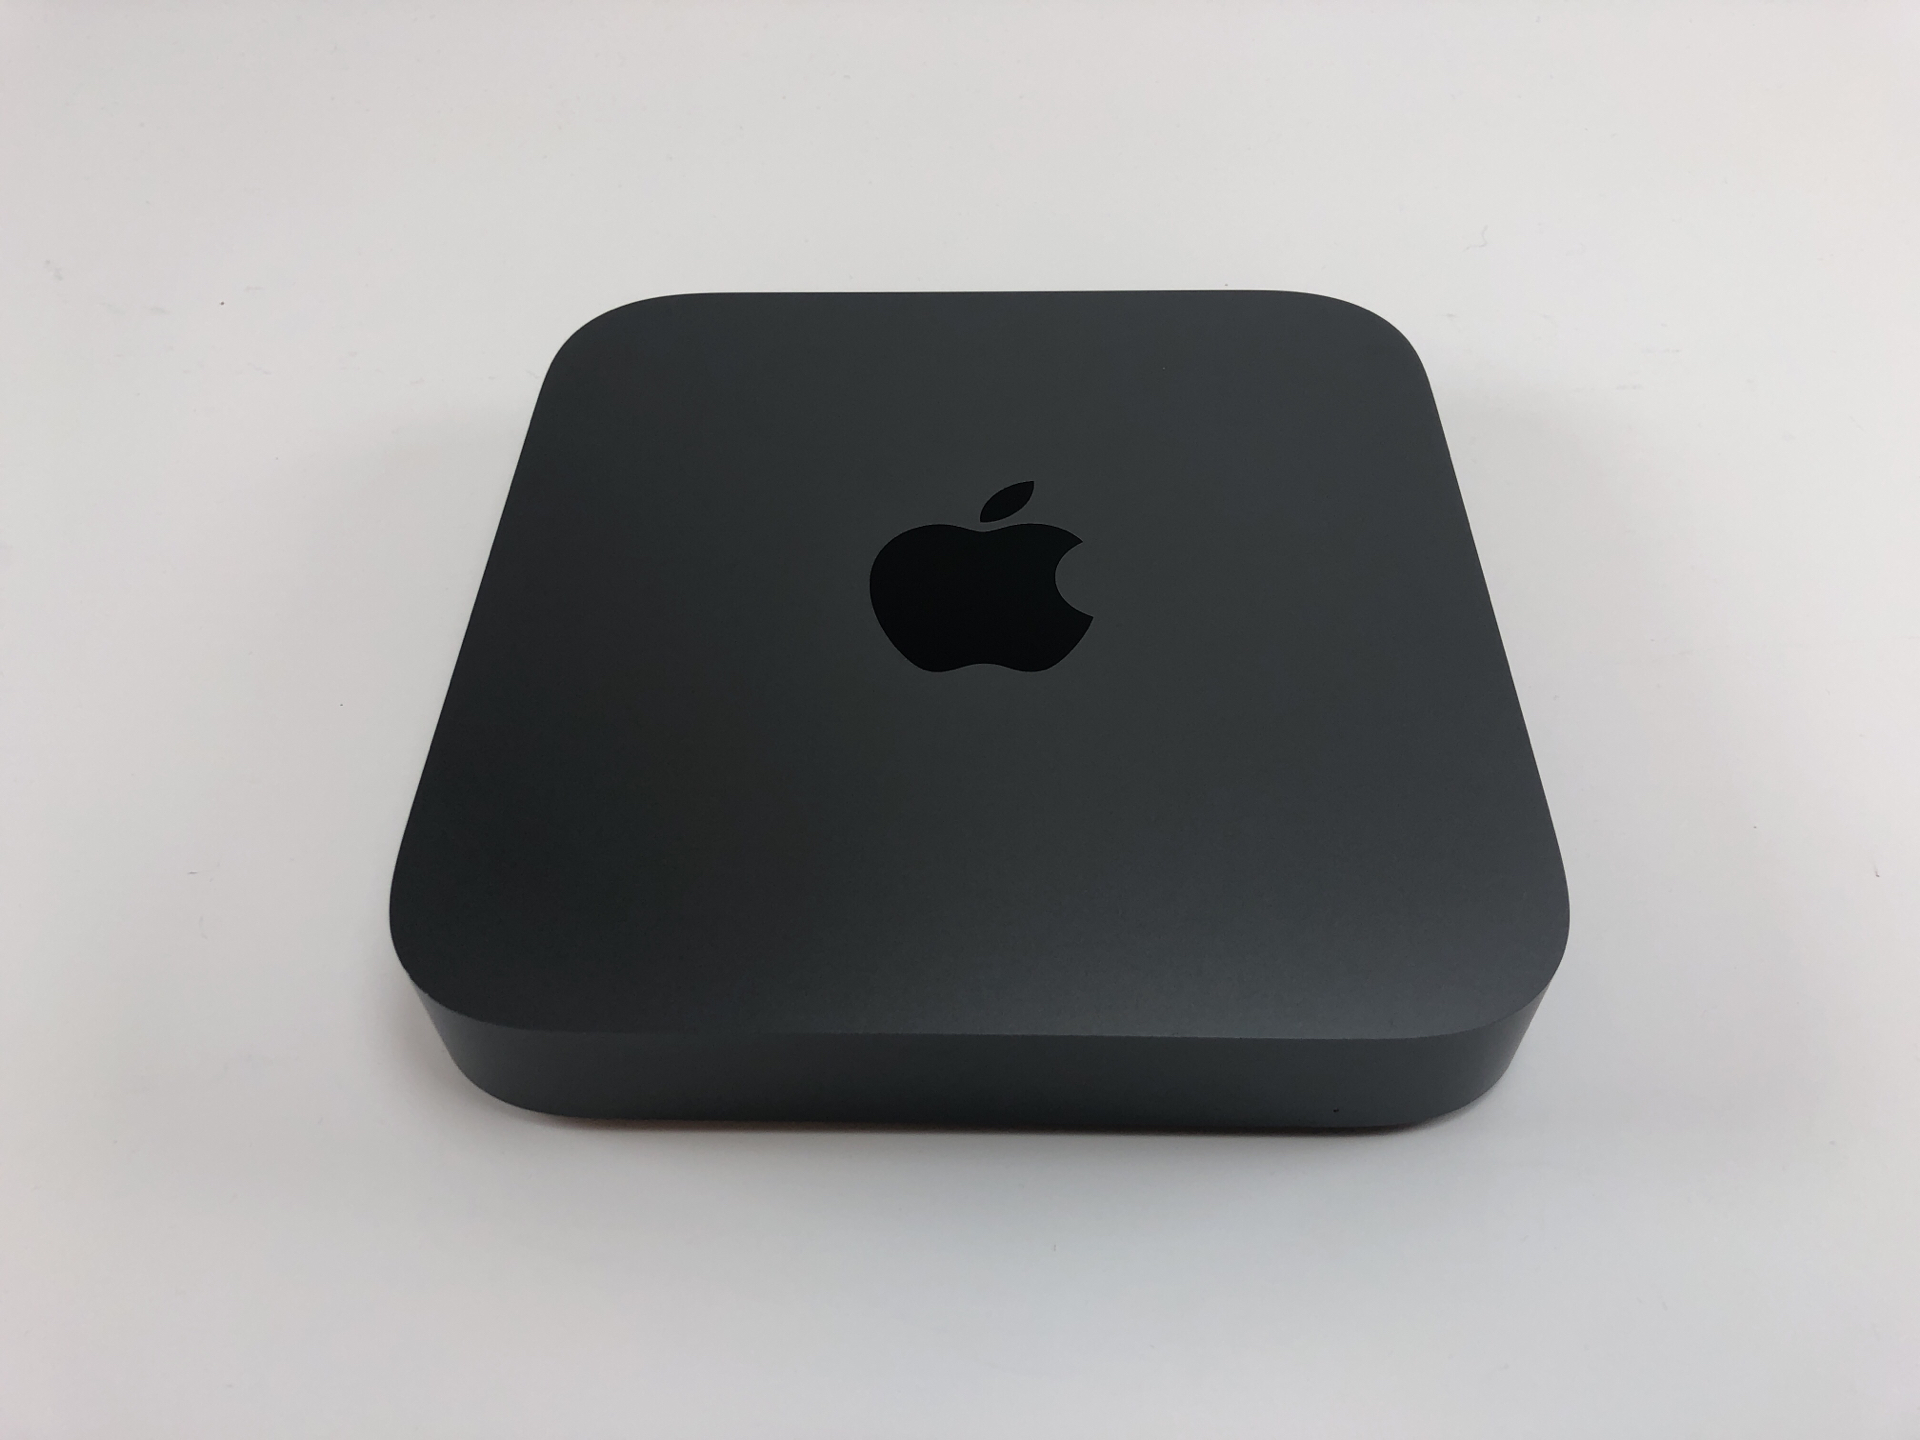 Mac Mini Late 2018 (Intel Quad-Core i3 3.6 GHz 64 GB RAM 128 GB SSD), Intel Quad-Core i3 3.6 GHz, 64 GB RAM, 128 GB SSD, obraz 2